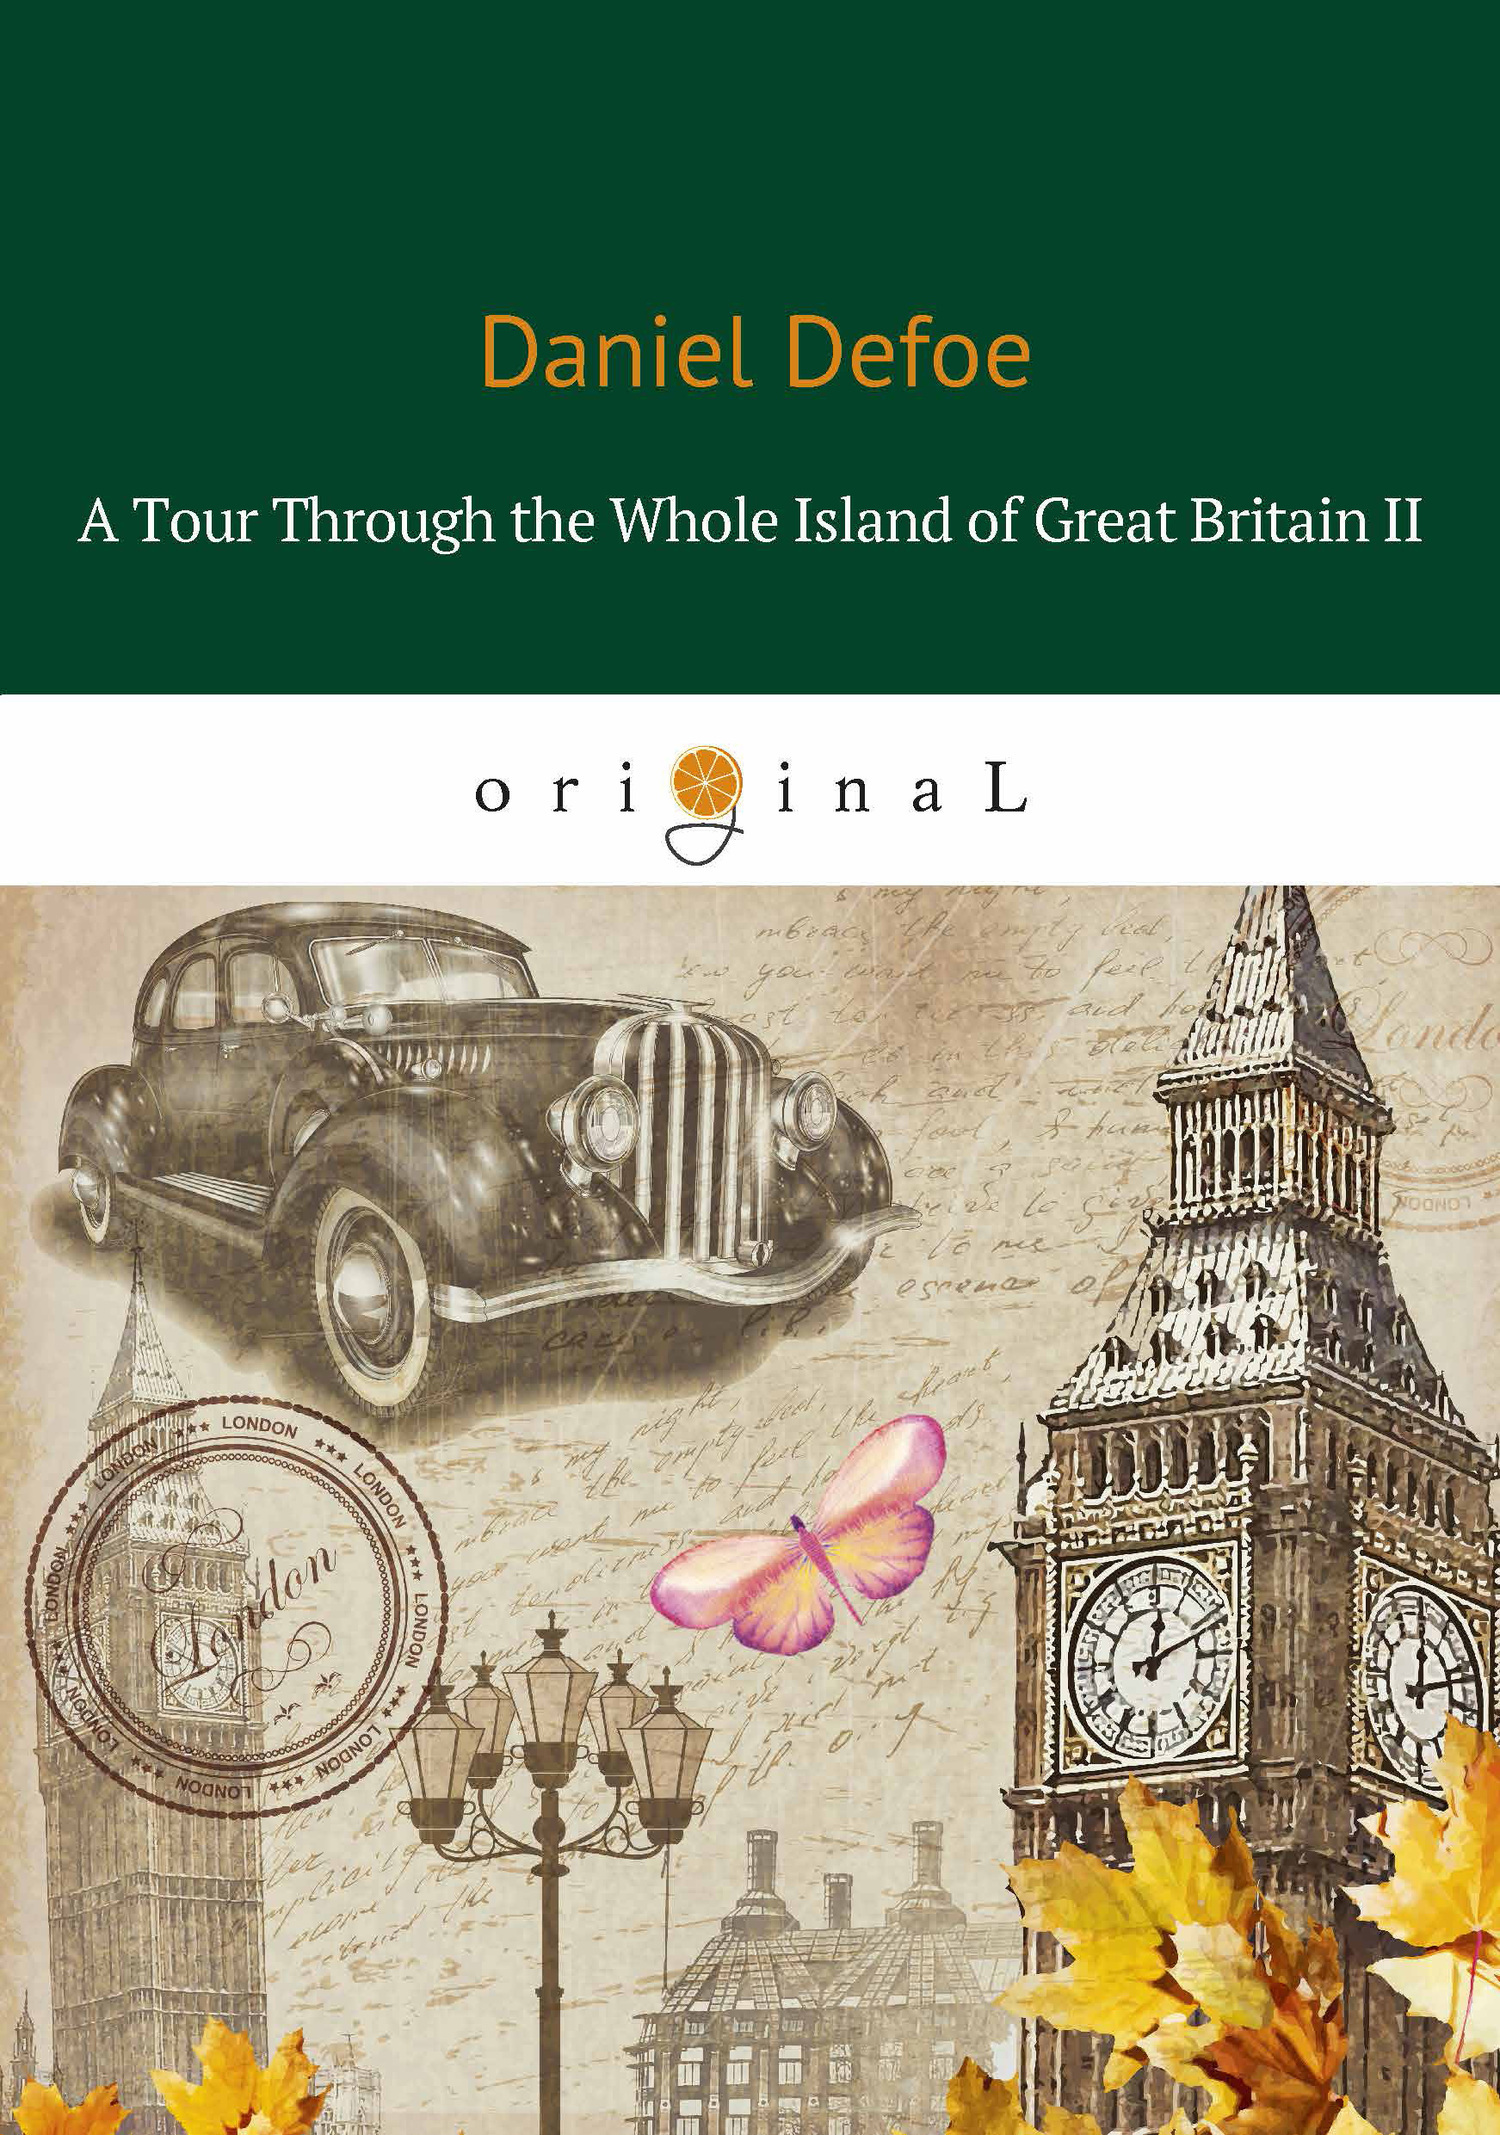 Даниэль Дефо A Tour Through the Whole Island of Great Britain II ISBN: 978-5-521-06817-3 doug lemov the writing revolution a guide to advancing thinking through writing in all subjects and grades isbn 9781119364948